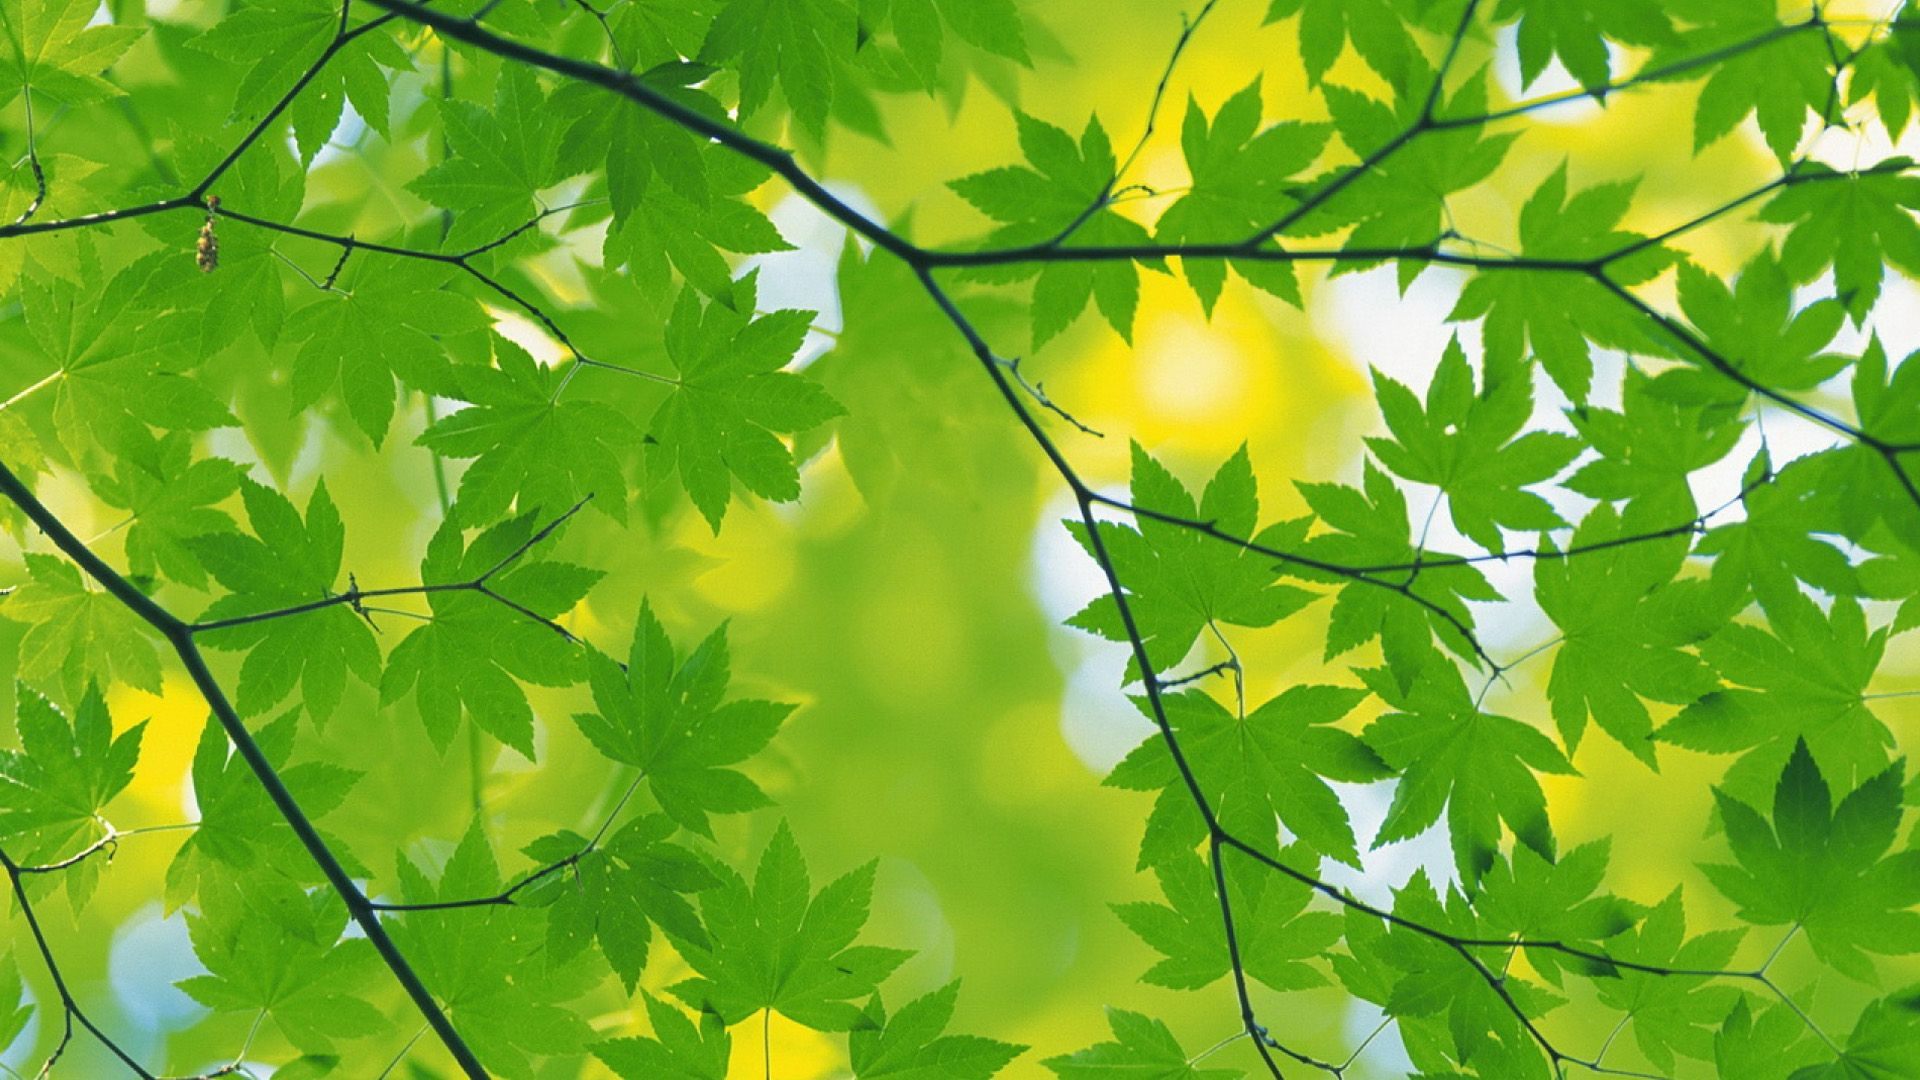 Fresh Green Leaves Wallpaper Backgrounds Pictures And Images